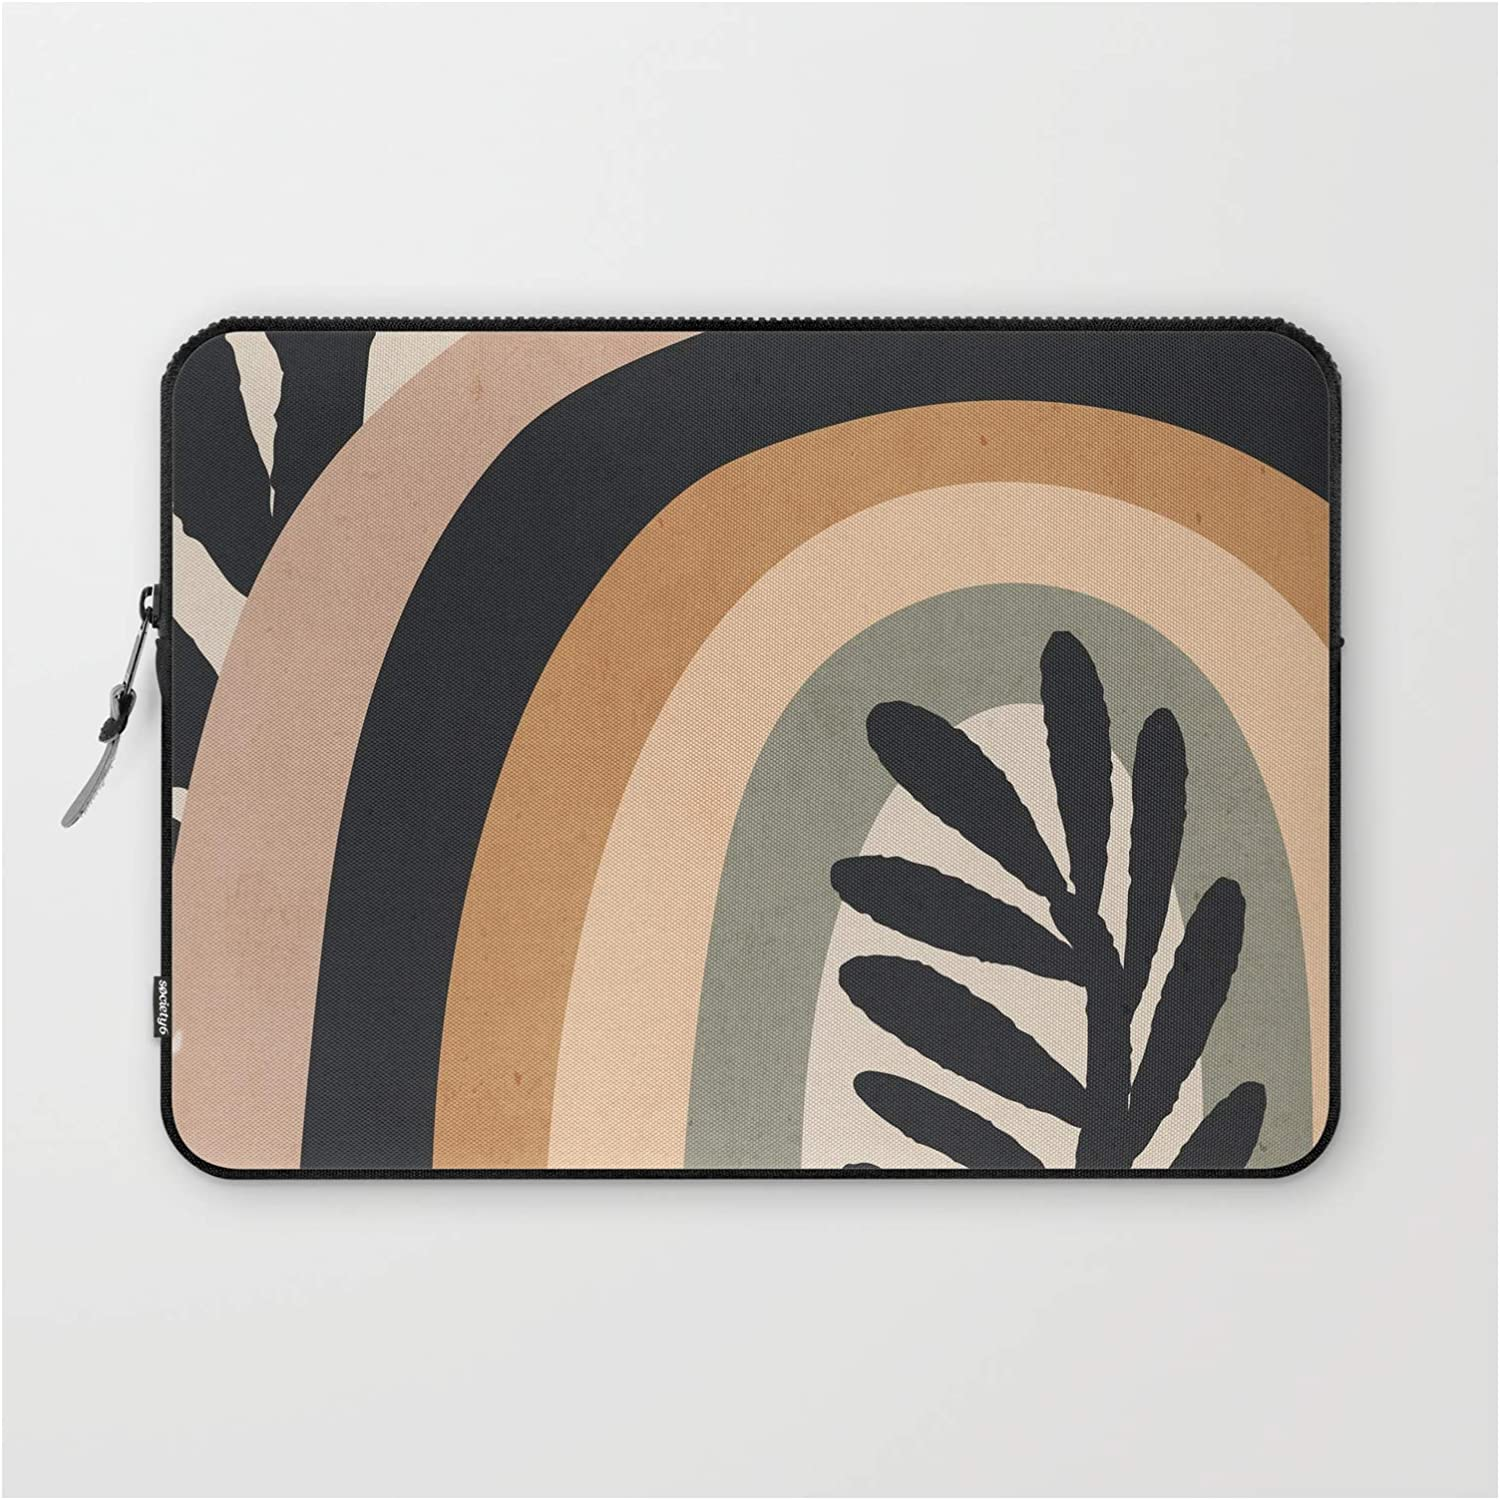 Abstract Art Rainbow 2 by - Colorado Springs Mall Laptop on Thingdesign Sleeve Genuine Free Shipping